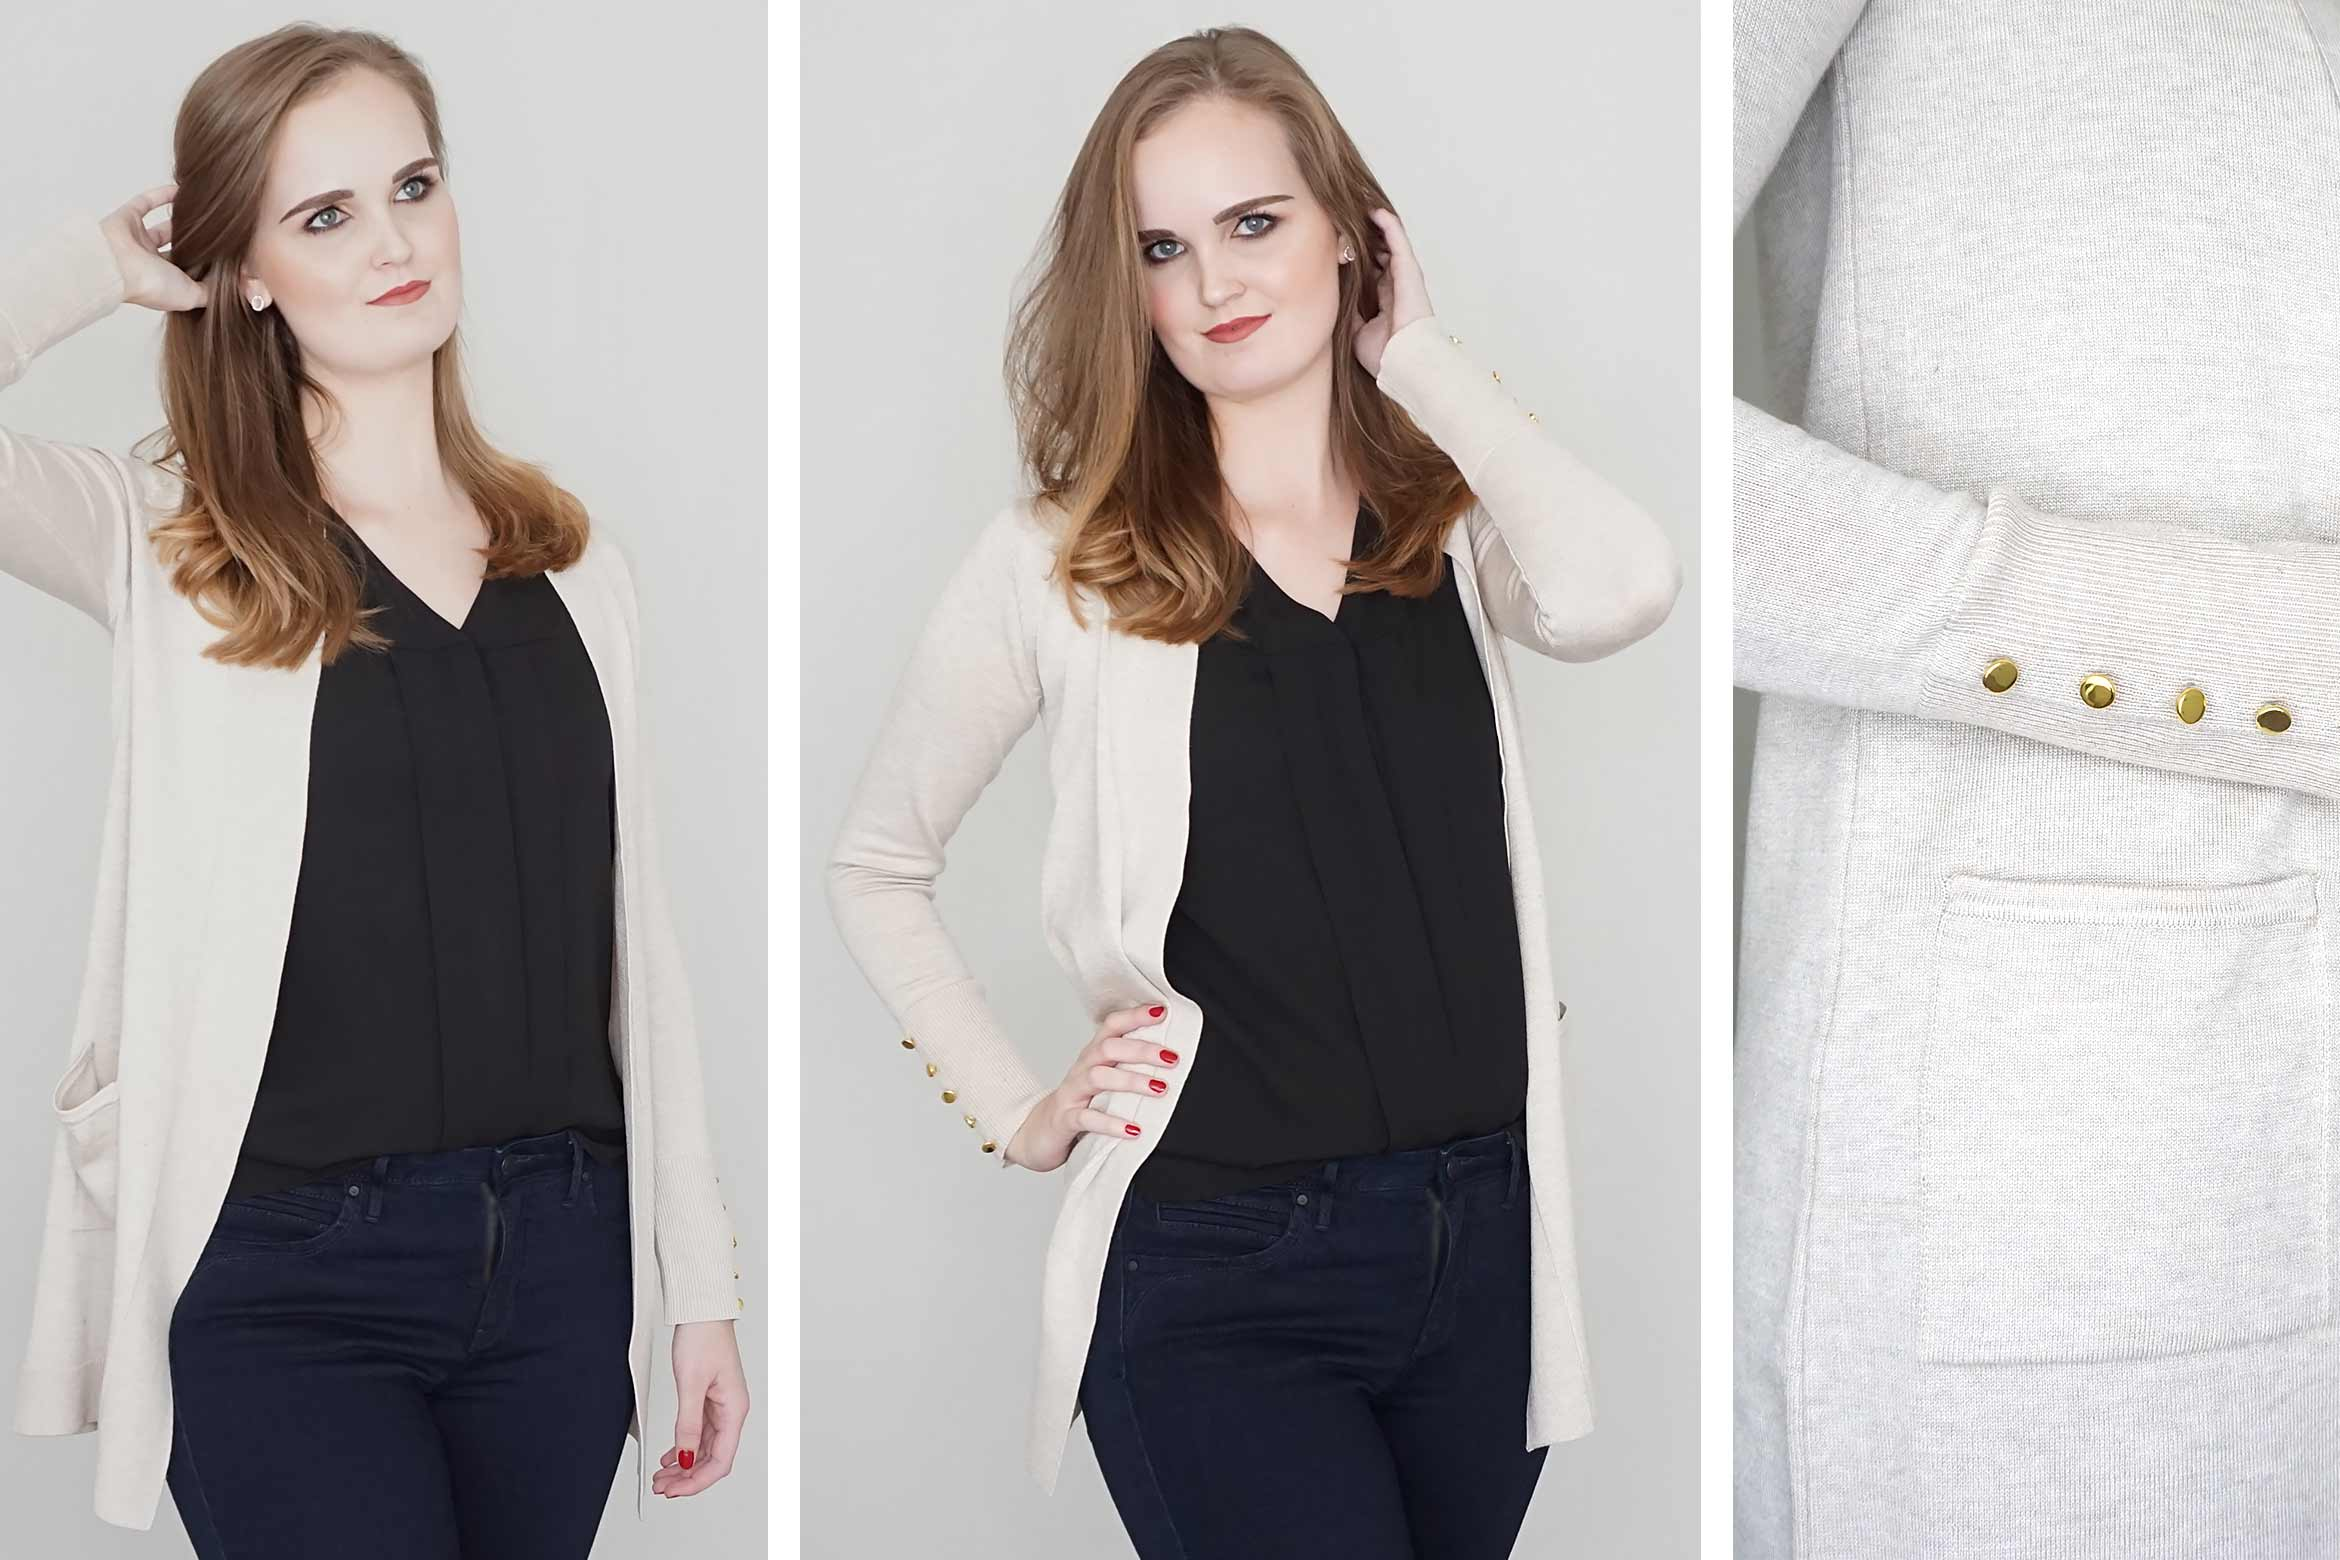 primark black formal cardigan review